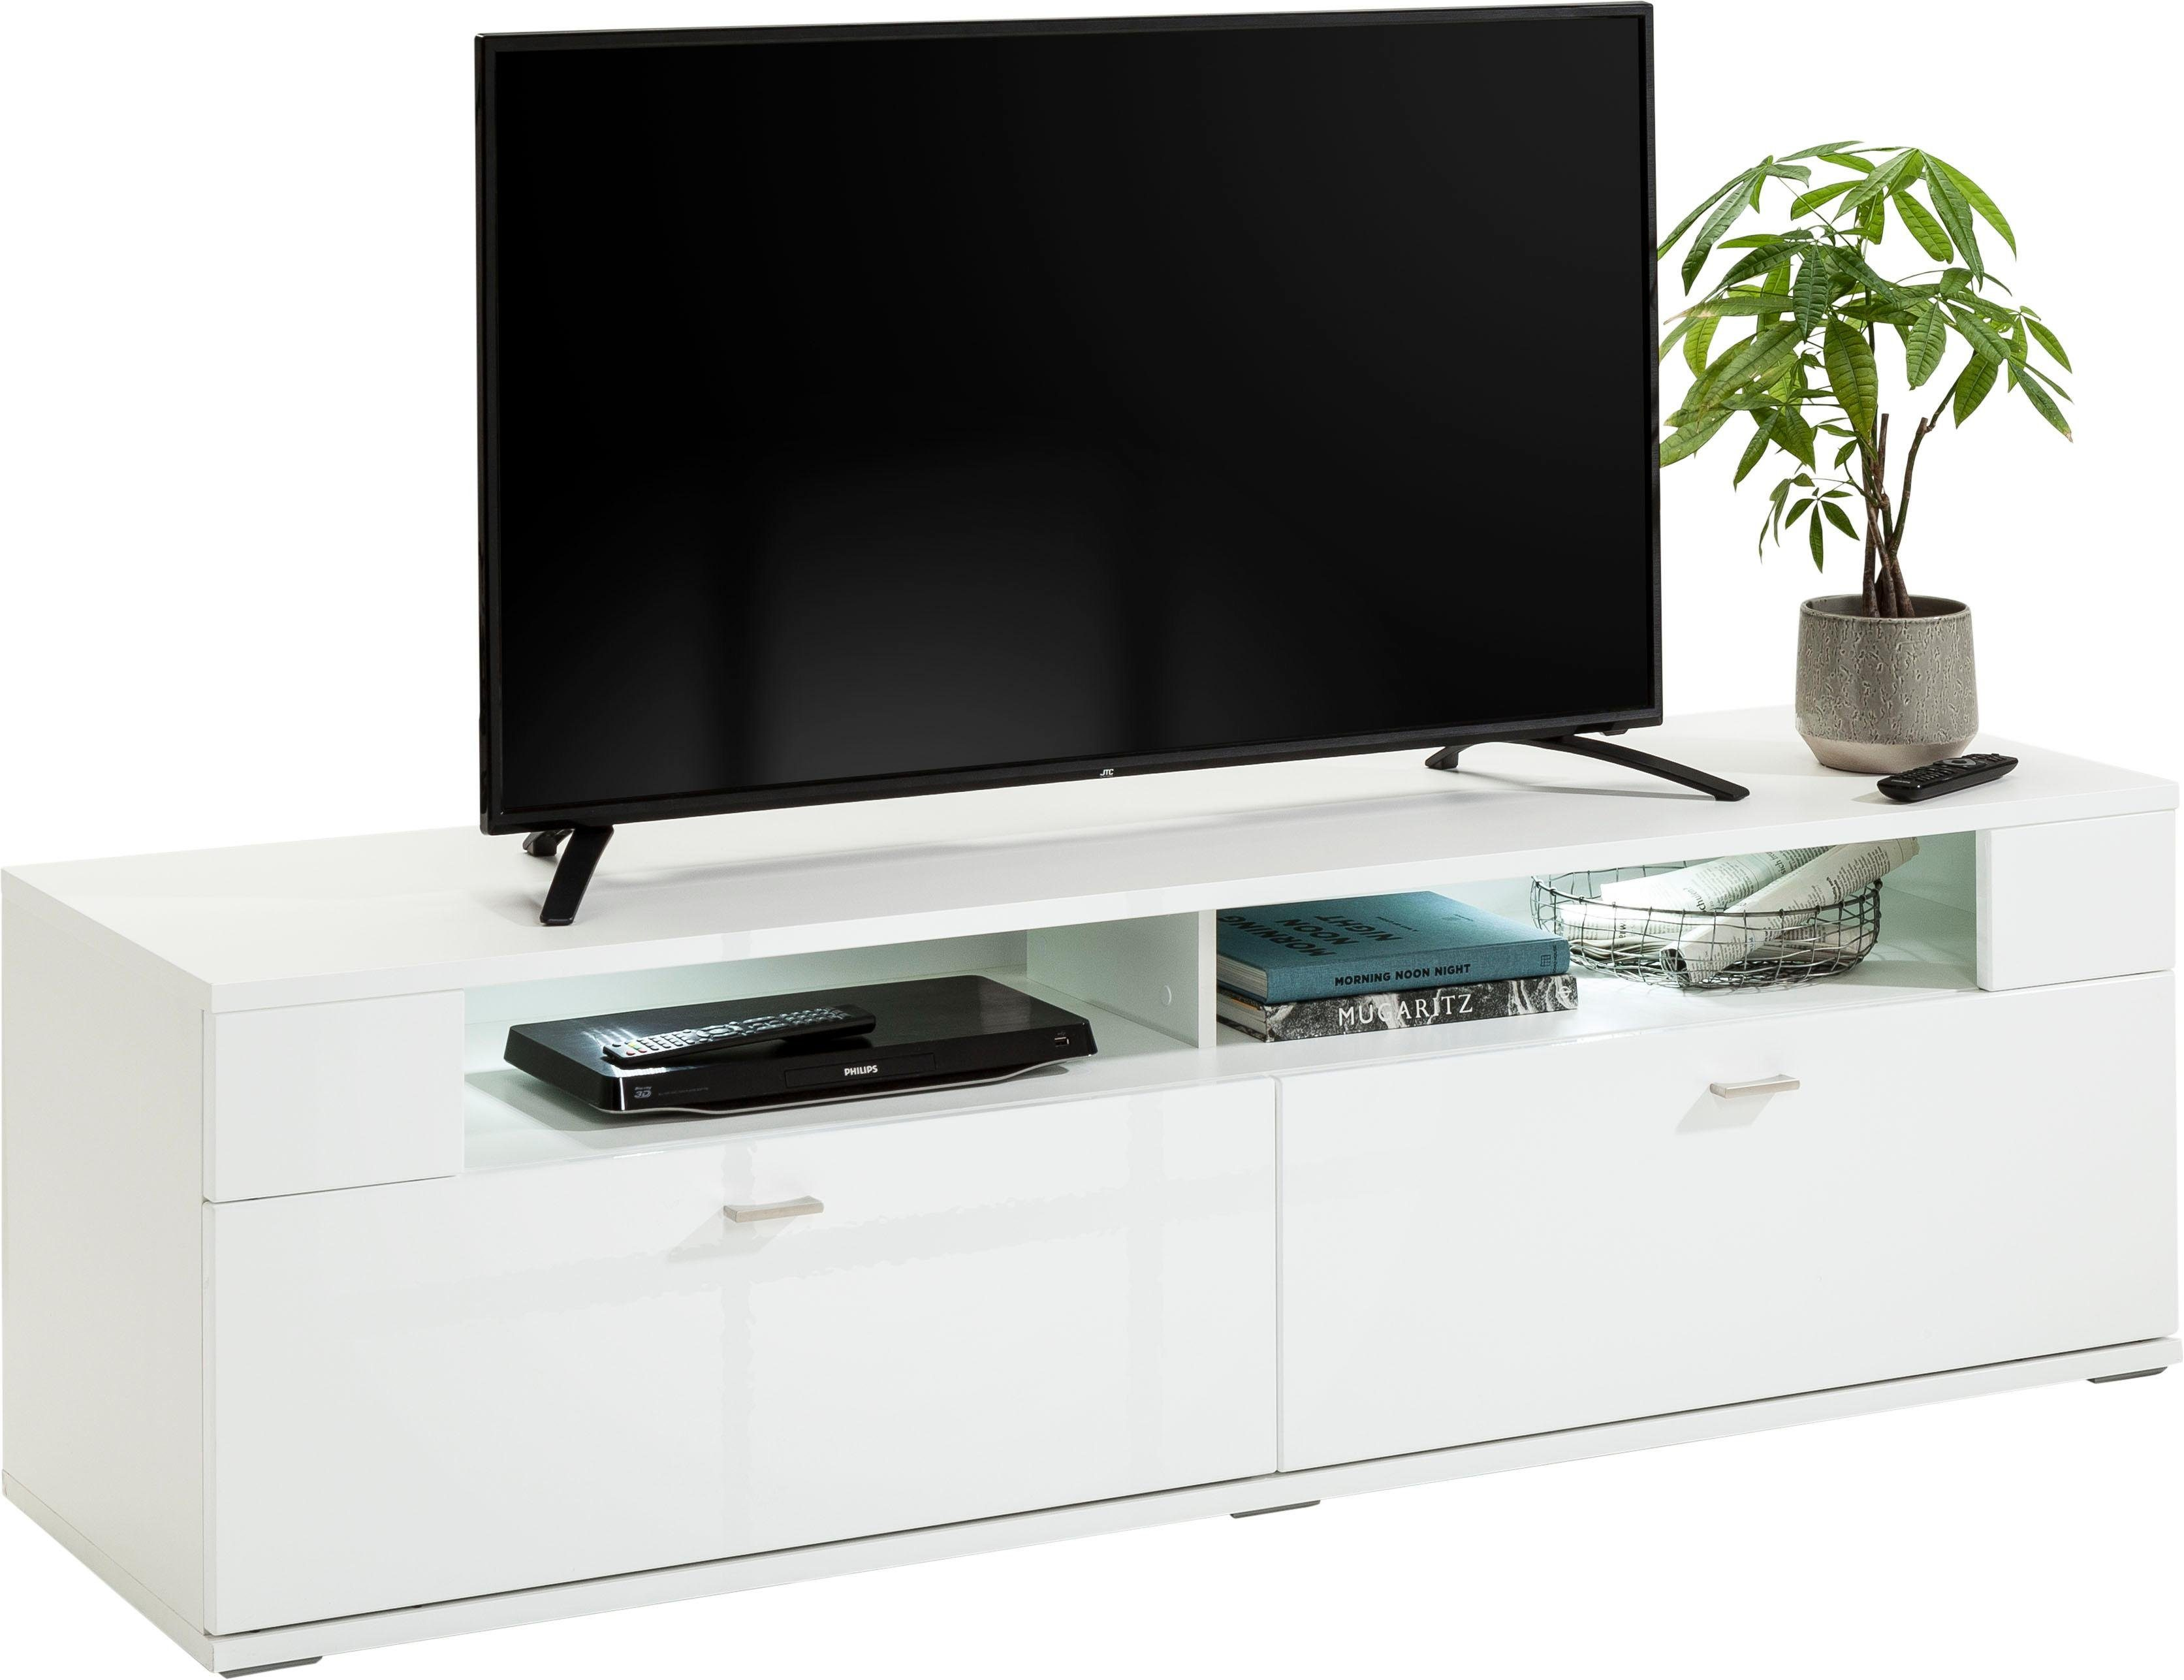 set one by musterring lowboard a tacomaa typ 34 breite 150 cm online kaufen set one by musterring tv boards komnit store